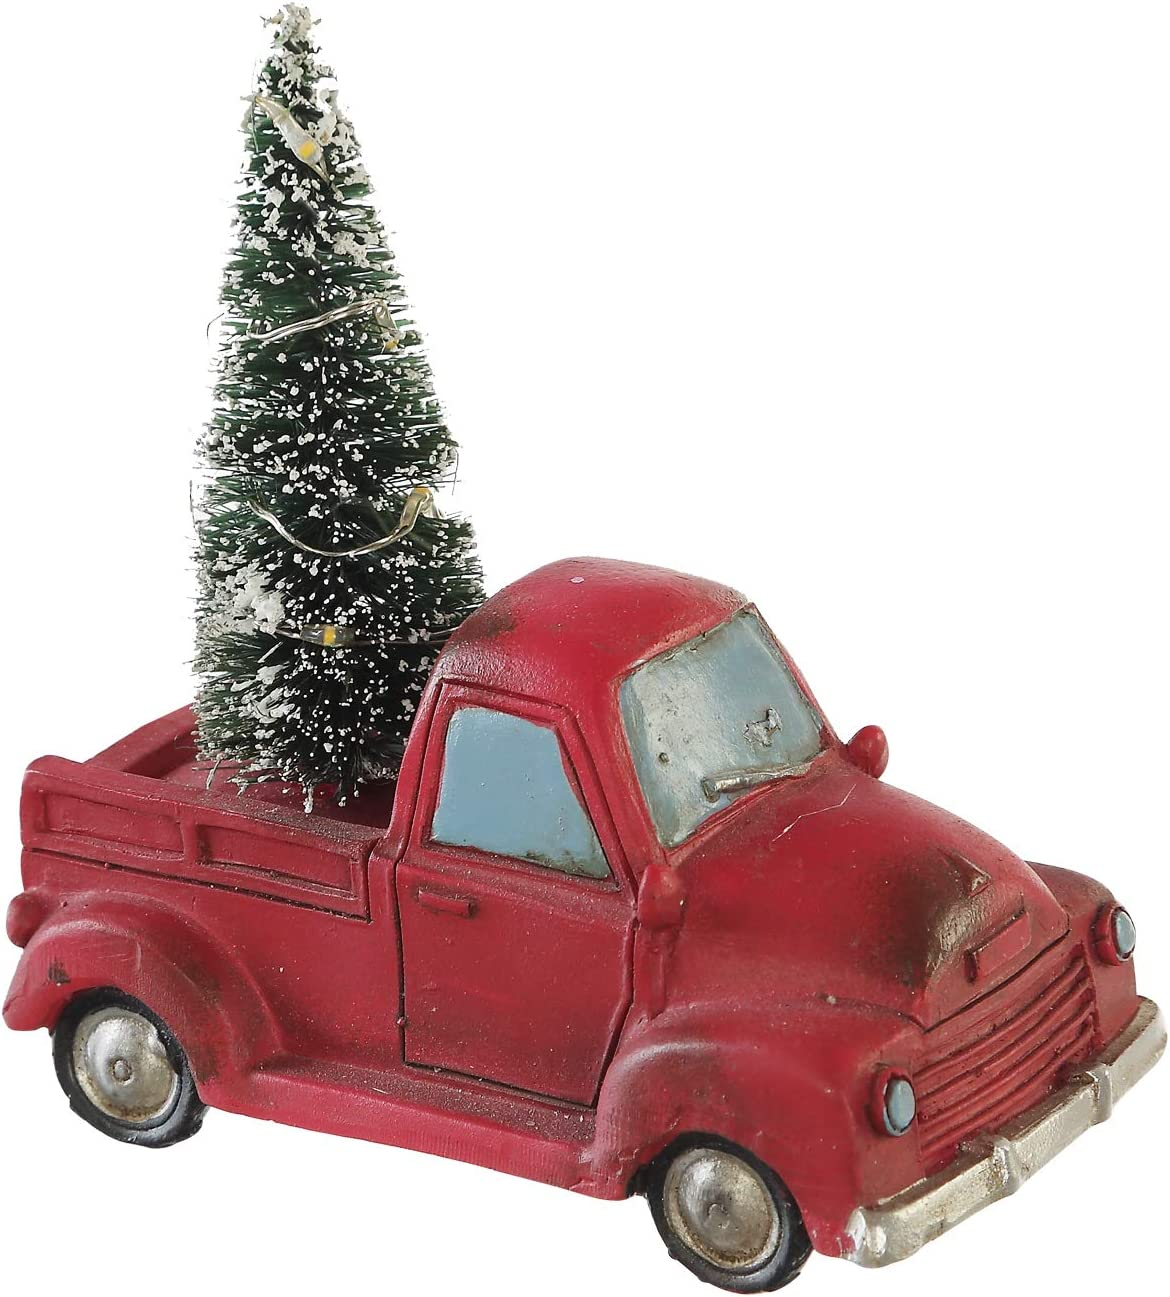 """Goose Creek Holiday Truck with LED Light Up Tree Table Decor Miniature Home Ornaments Figurine, Red, 4.25"""" W x 2.5"""" D x 5"""" H"""